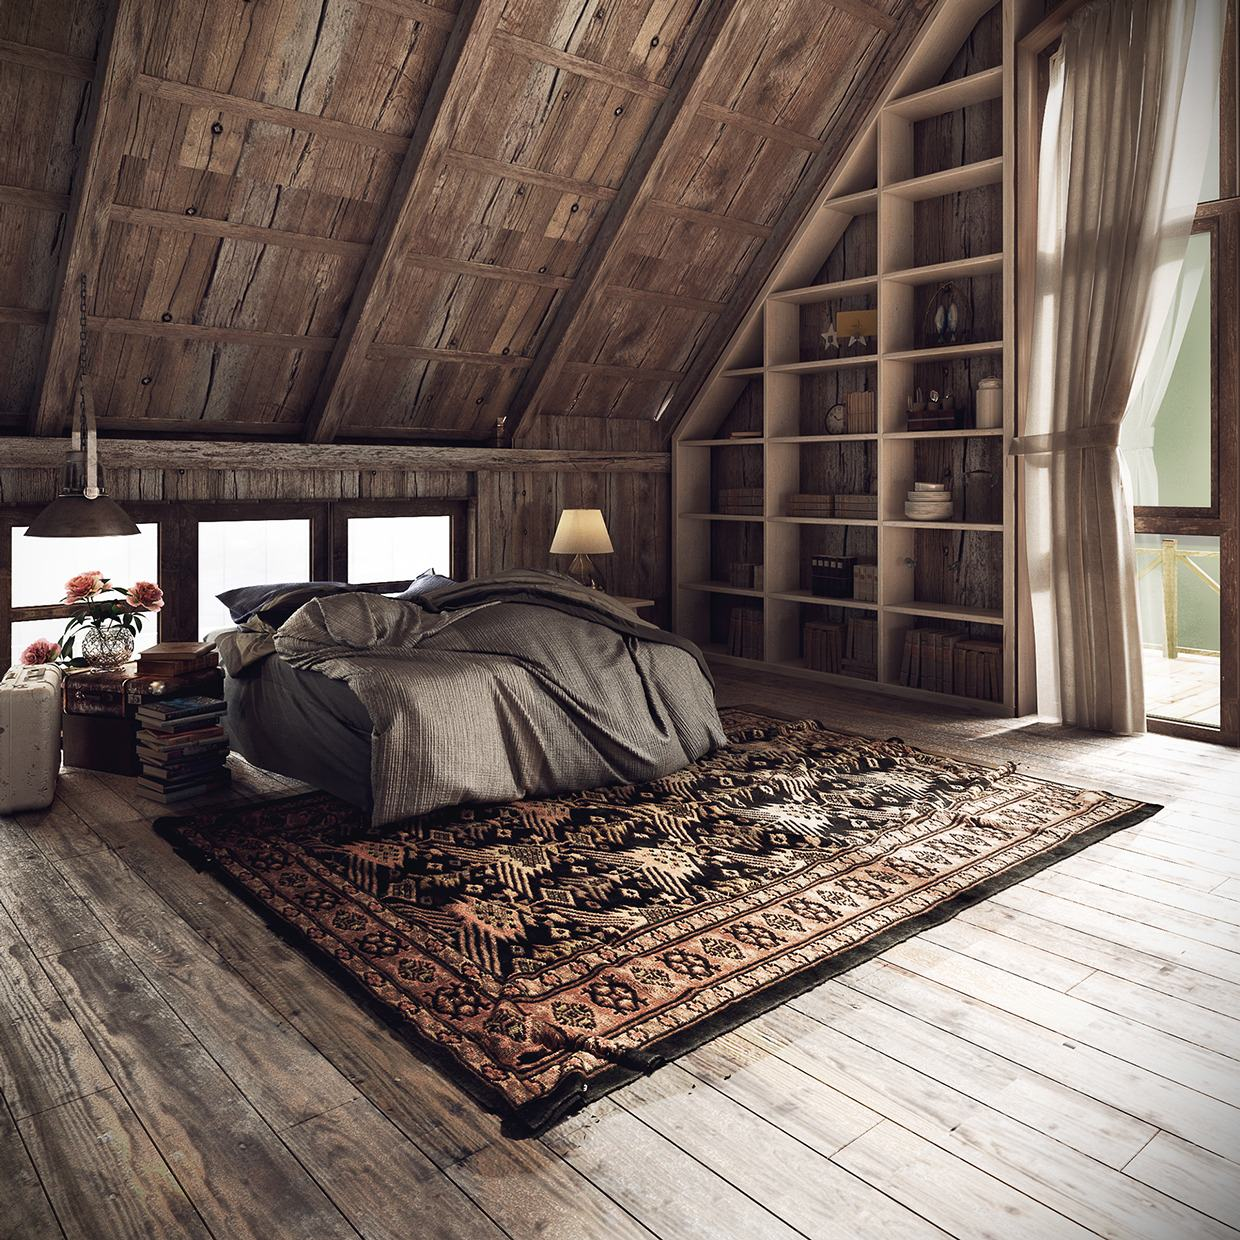 Inspiring Rustic Bedroom Ideas To Decorate With Style: 23+ Rustic Bedroom Interior Design